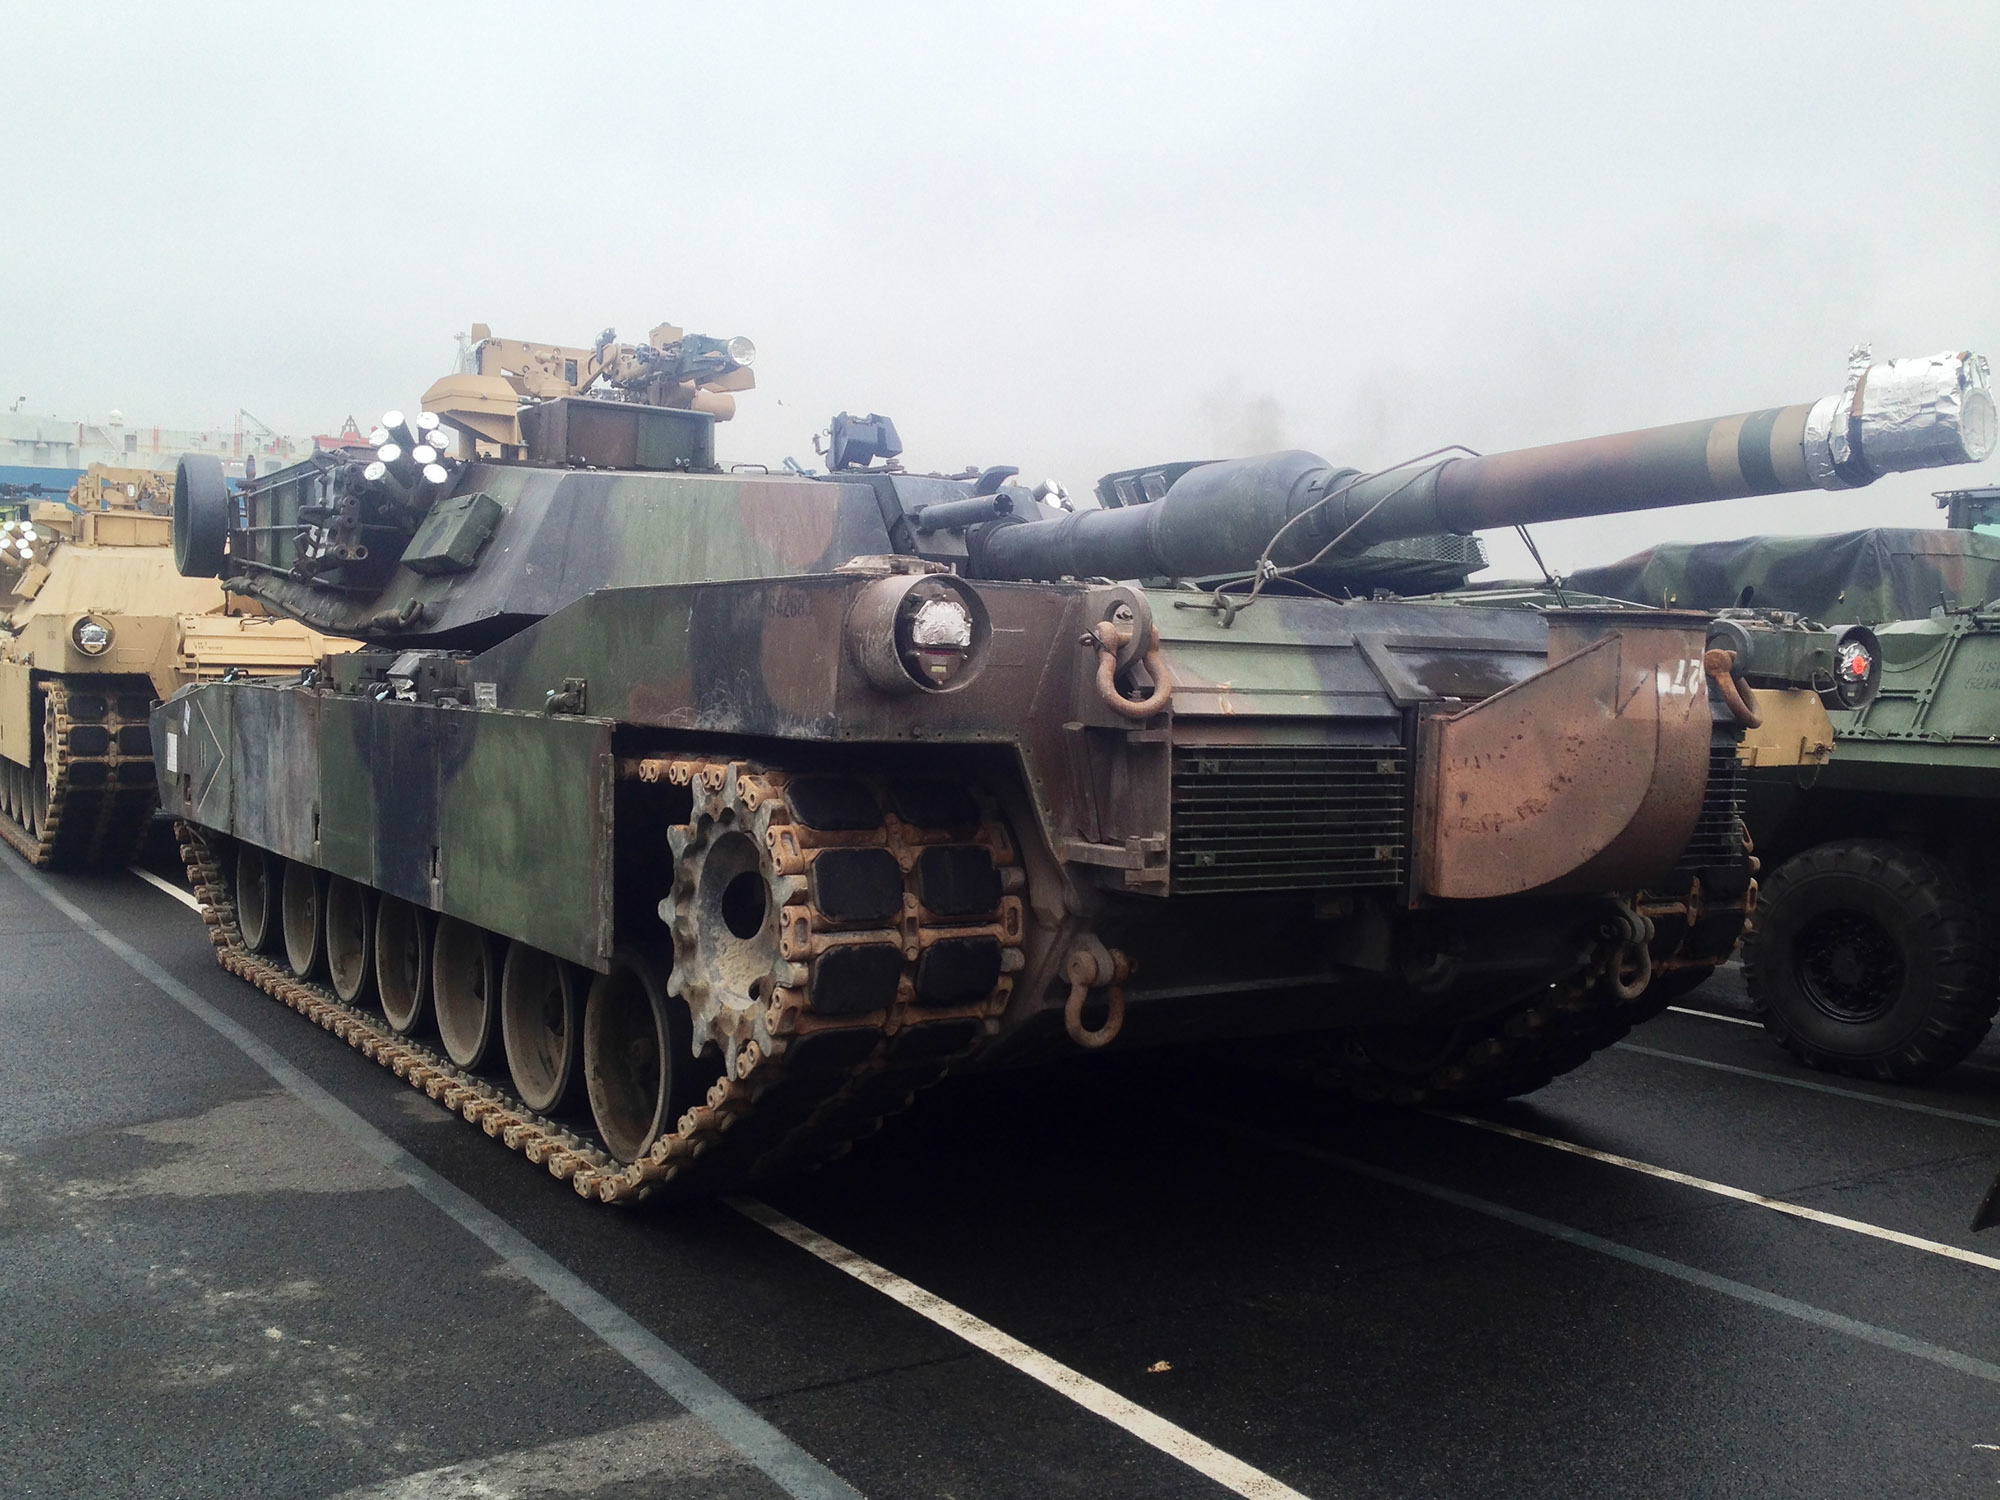 U.S. Marines now have tanks, artillery, and light-armored reconnaissance vehicles in Europe to support NATO allies and international partner countries. US Marine Corps photo.